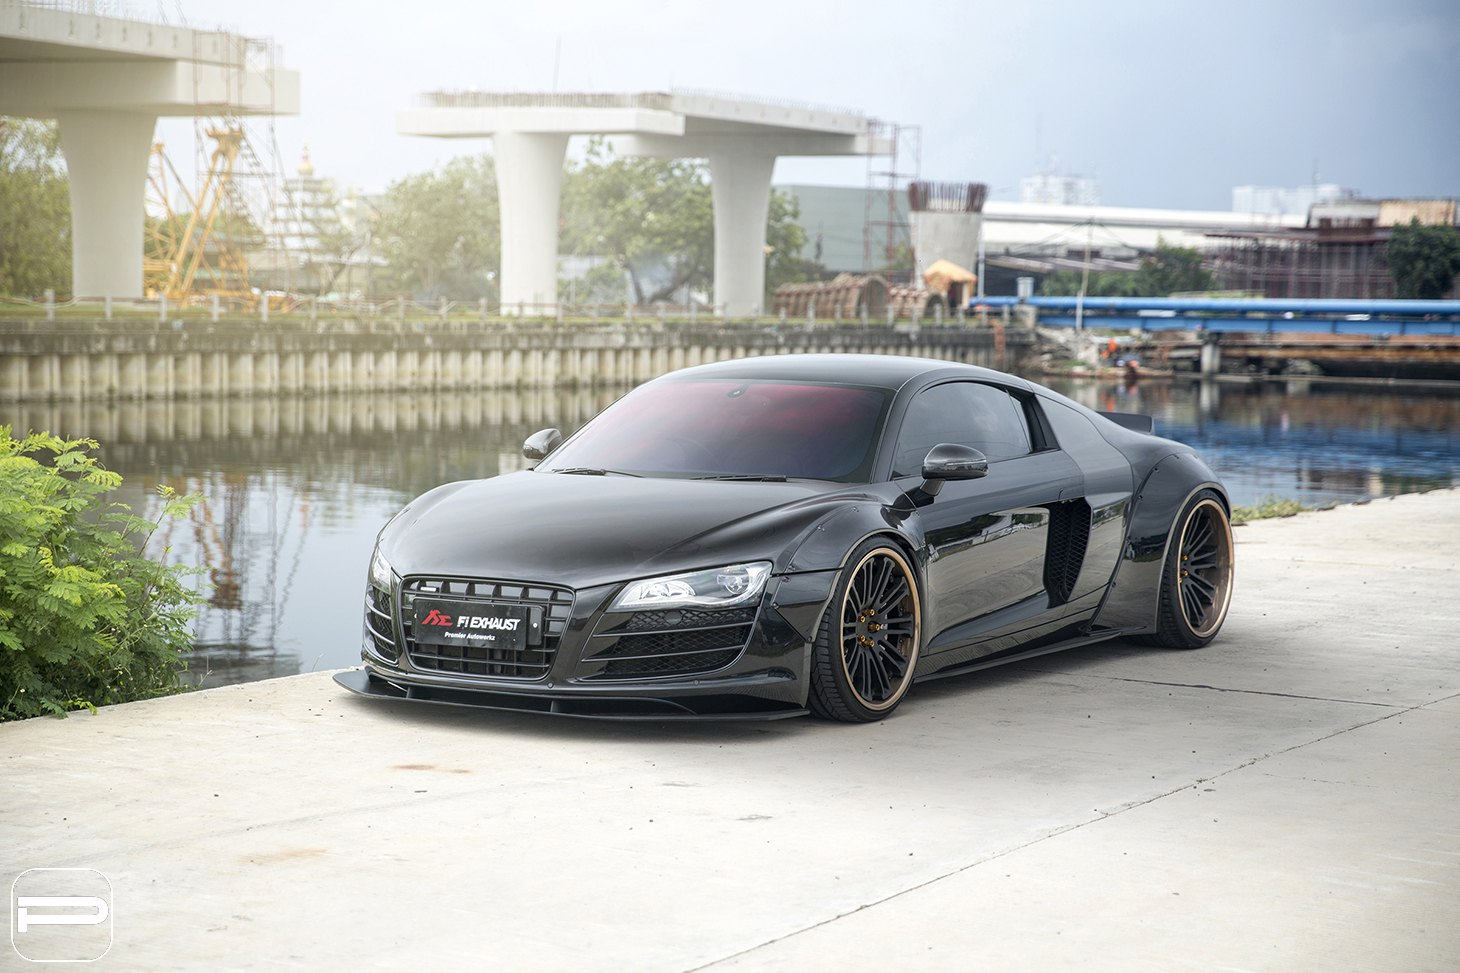 Sleek Black Audi R8 Upgraded With A Body Kit And Diamond Pur Wheels